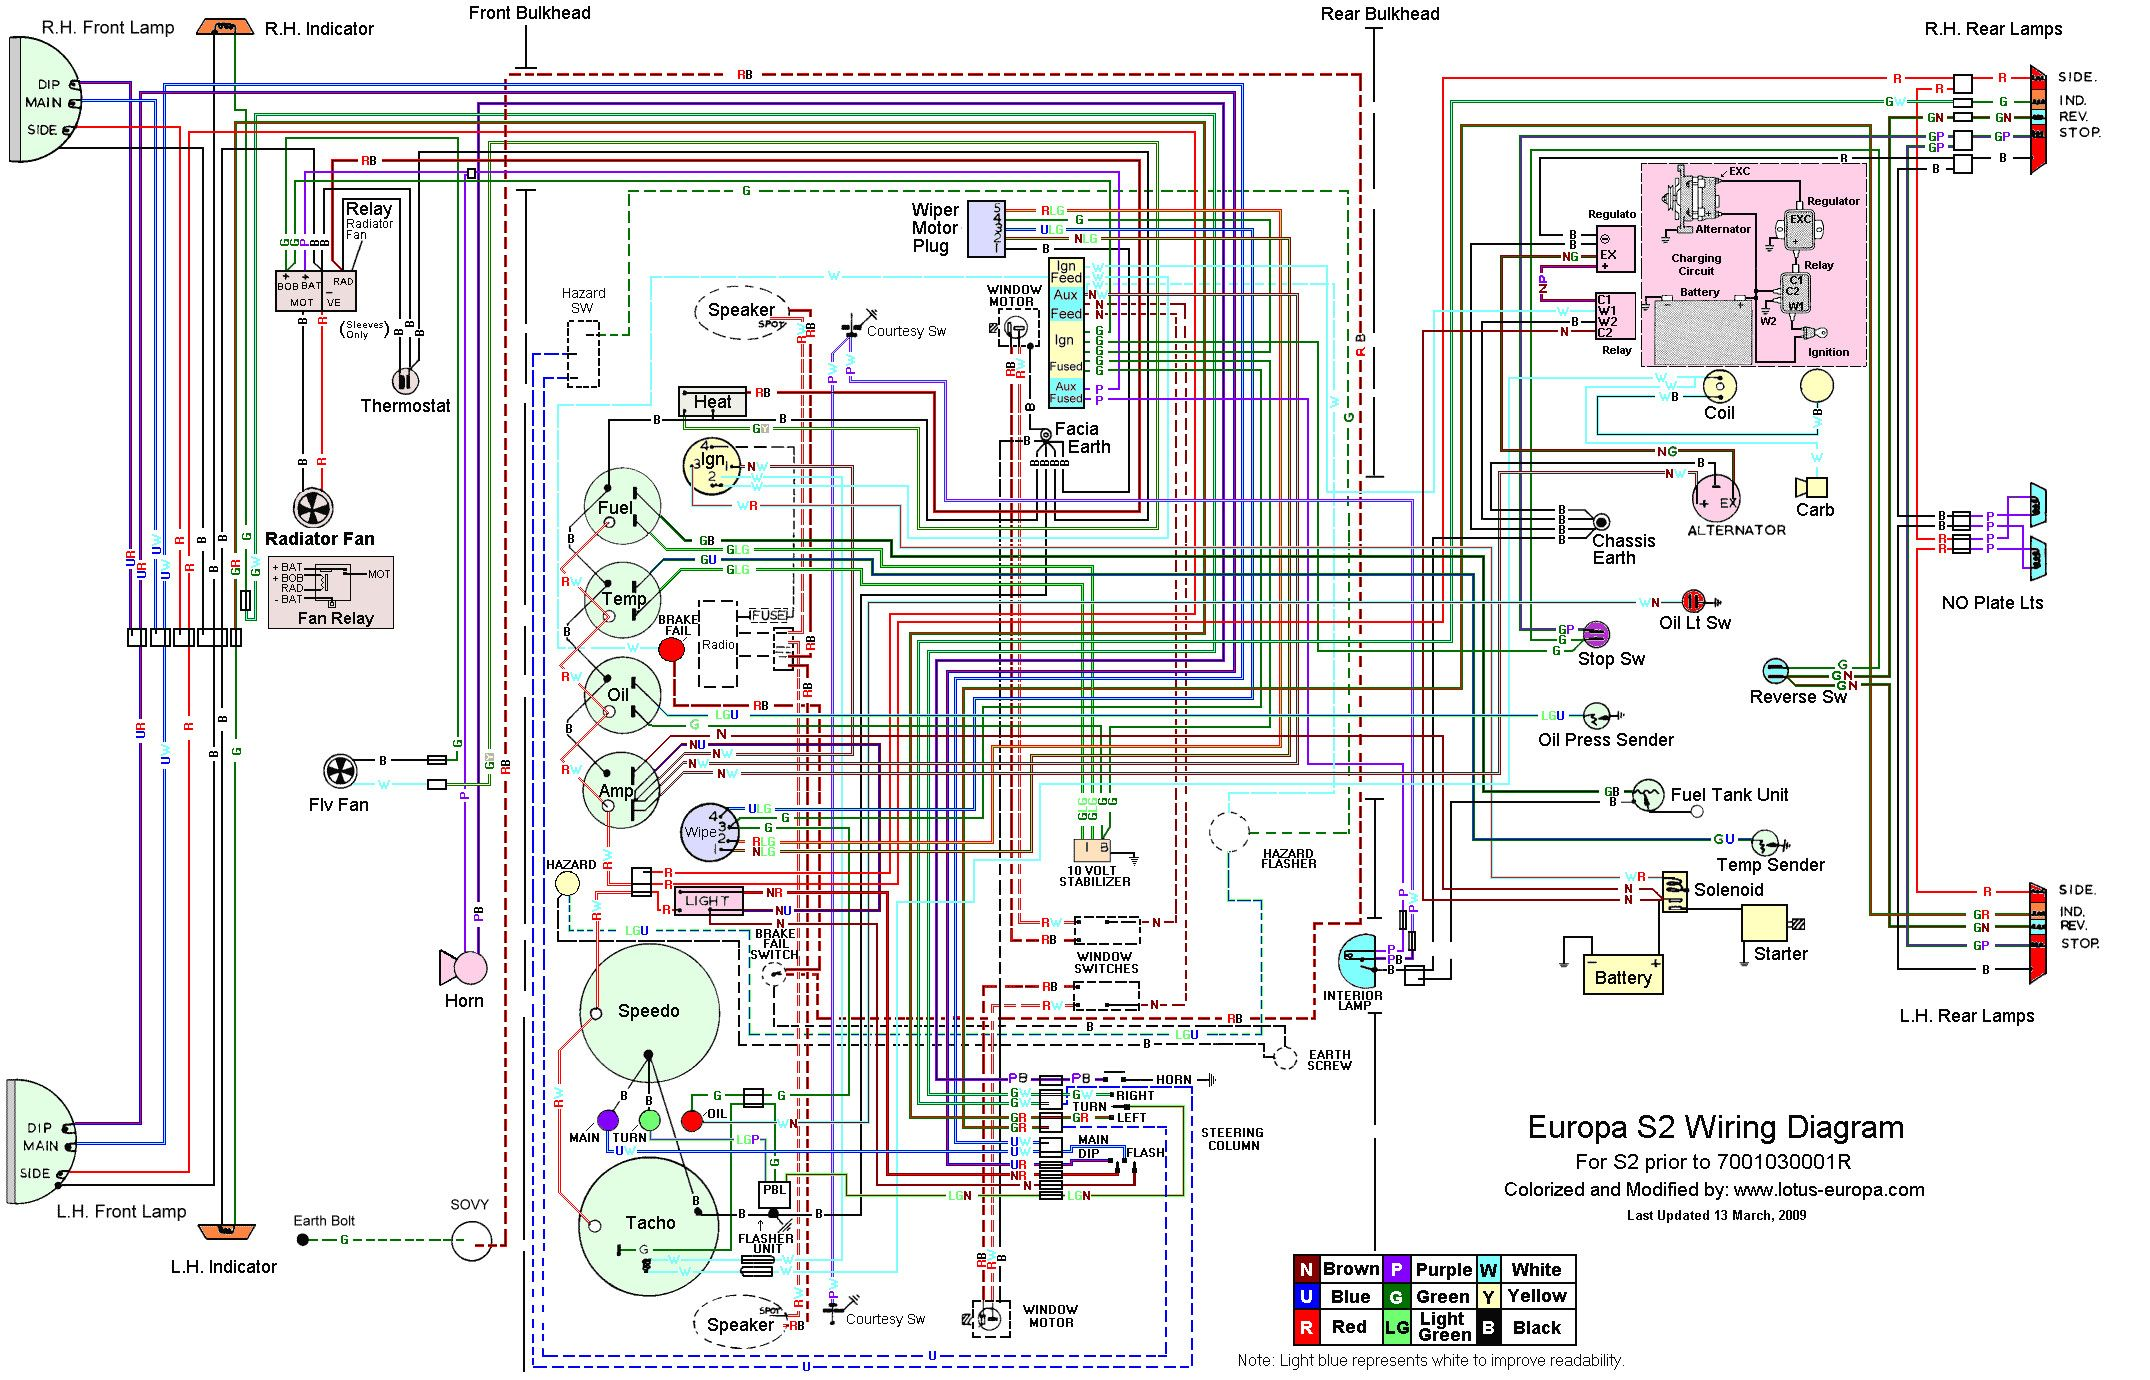 Renault Master 2 Wiring Diagram | Wiring Diagram on centrifugal casting diagram, power steering pump diagram, hard drive motor pinout, centrifugal switch diagram, 240v motor run capacitor diagram, basement stair construction diagram, hard start relay kit, dometic air conditioner parts diagram, capacitor start electric motor diagram, hard drive motor wiring, hard start kit for refrigerator, psc motor diagram, hard start capacitor guide, permanent split capacitor motor diagram, hard drive wiring diagram, ac capacitor diagram, hard start kit diagram, cscr motor diagram, relay diagram,